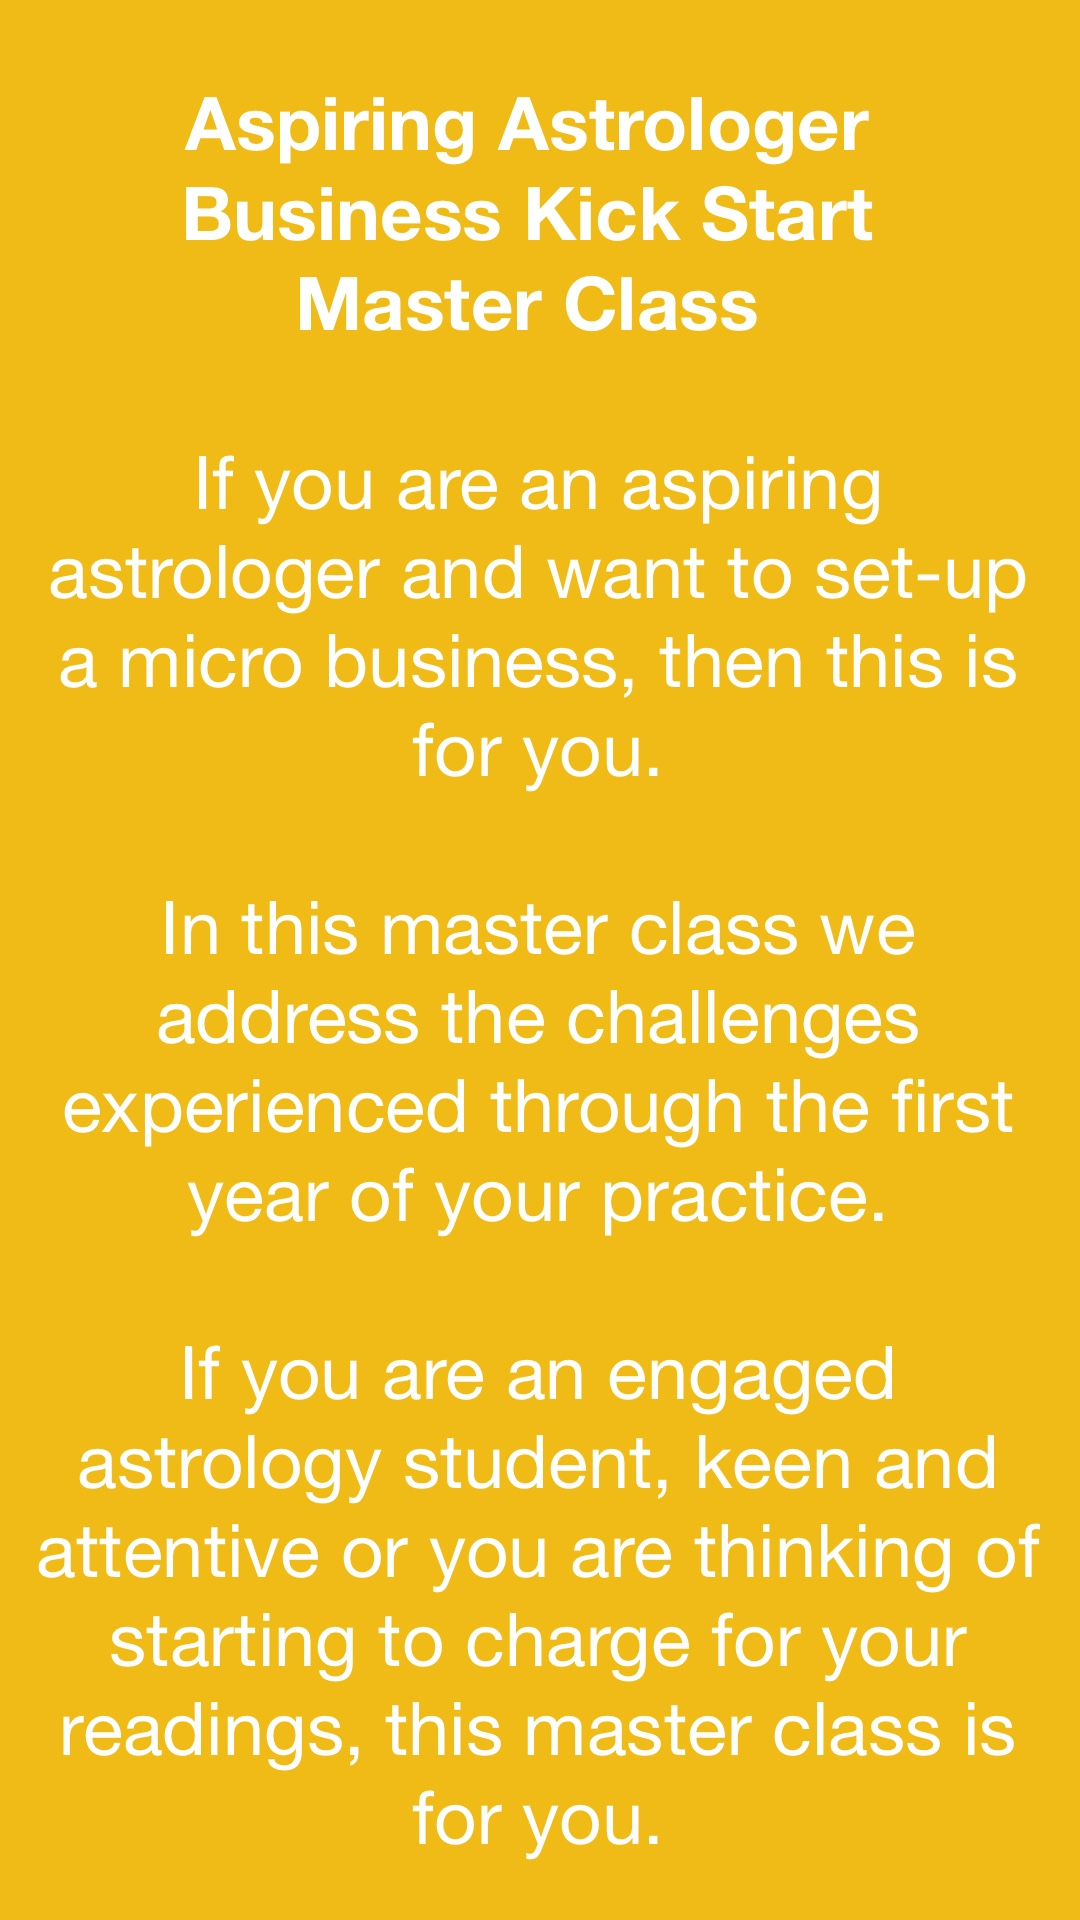 Aspiring Astrologer Business Kick Start Master Class - Vancouver